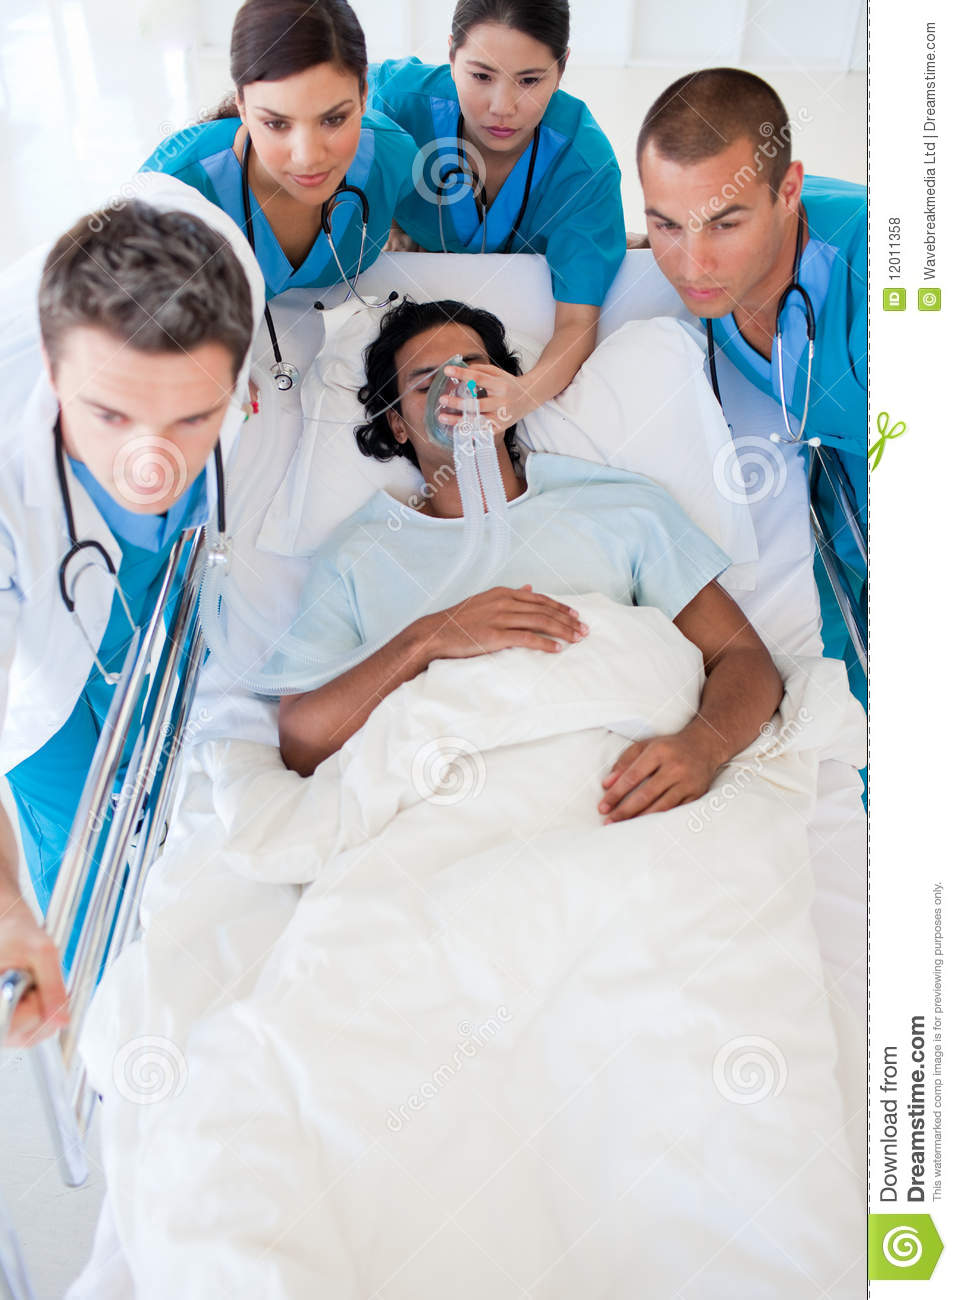 Multi-ethnic emergency team carrying a patient